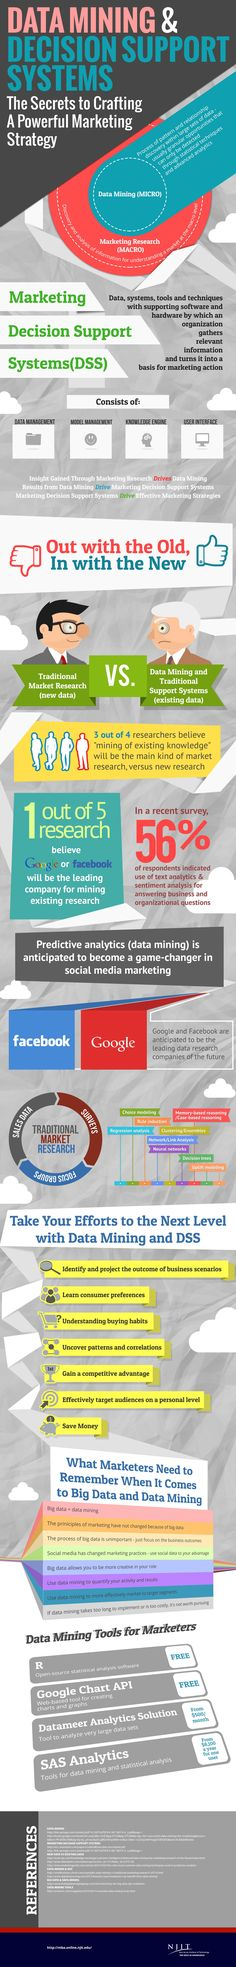 Data Mining And Decision Support Systems: The Secrets To Crafting A Powerful Marketing Strategy #Infographic #Marketing #DataMining